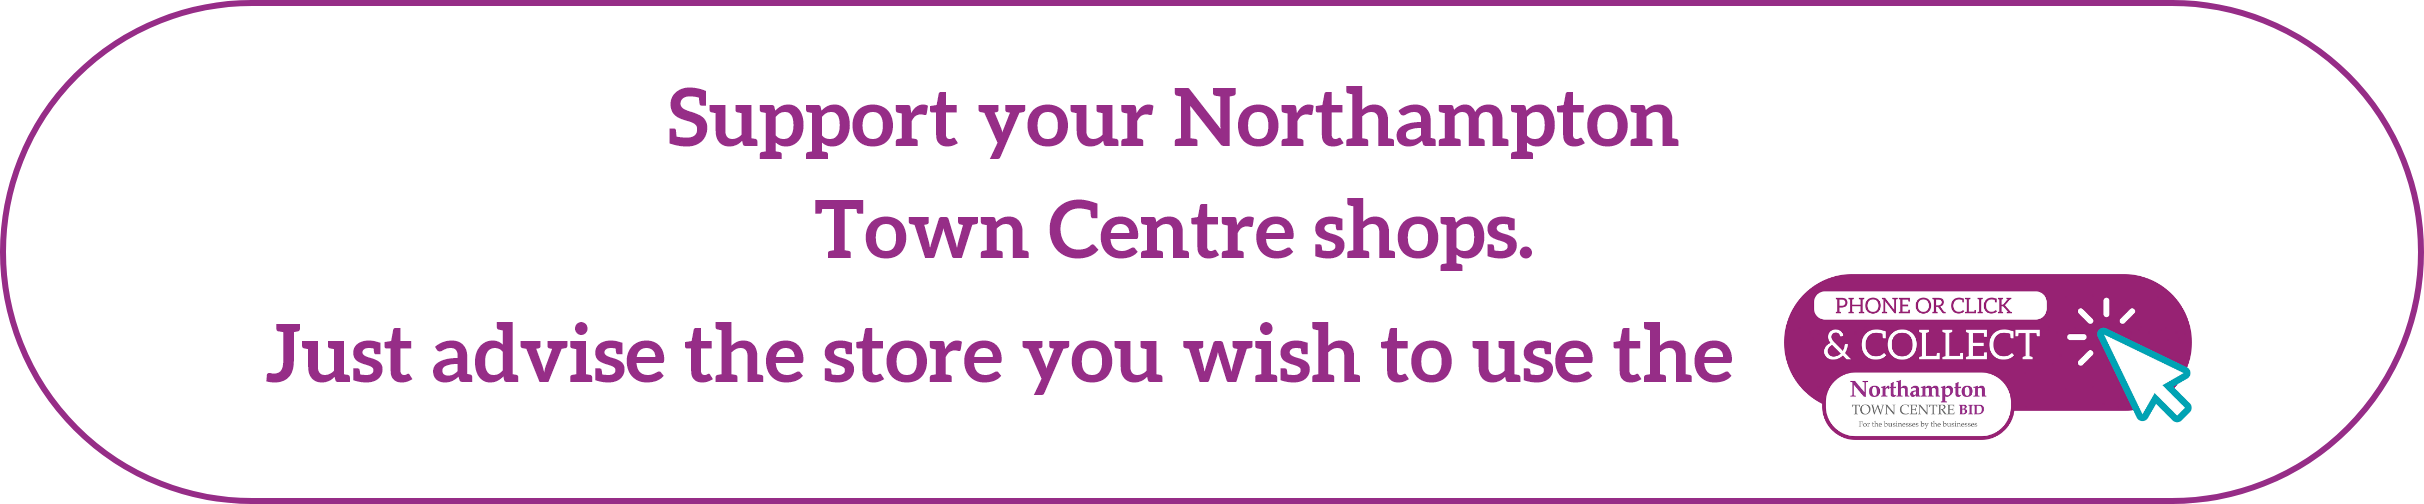 Support your Northampton Town Centre shops. Just advise the store you wish to use the phone or click and collect